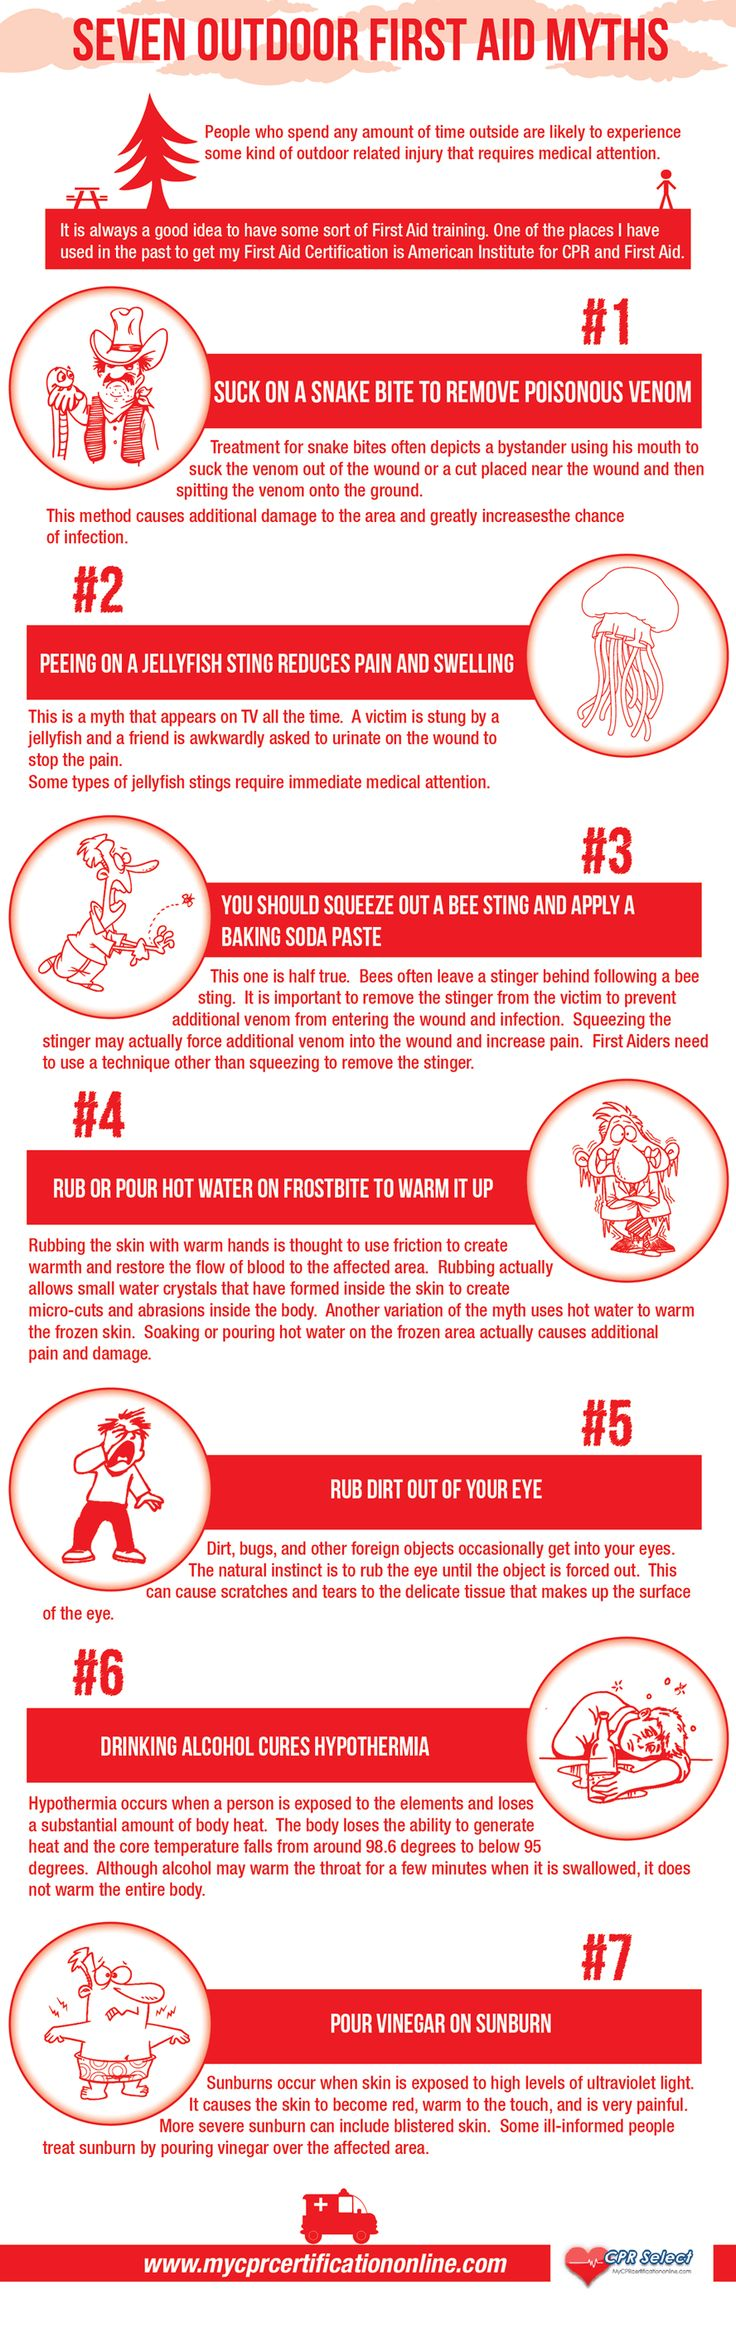 7 Outdoor First Aid Myths. Remember that people who spend time outdoors can experience injuries that might require medical attention, so it is always good to know basic first aid training. For example, for severe bleeding you might want to use an israeli bandage, we explain how to use it here: https://insidefirstaid.com/personal/first-aid-kit/what-is-and-how-to-use-israeli-bandage #survival #preparedness #prepping